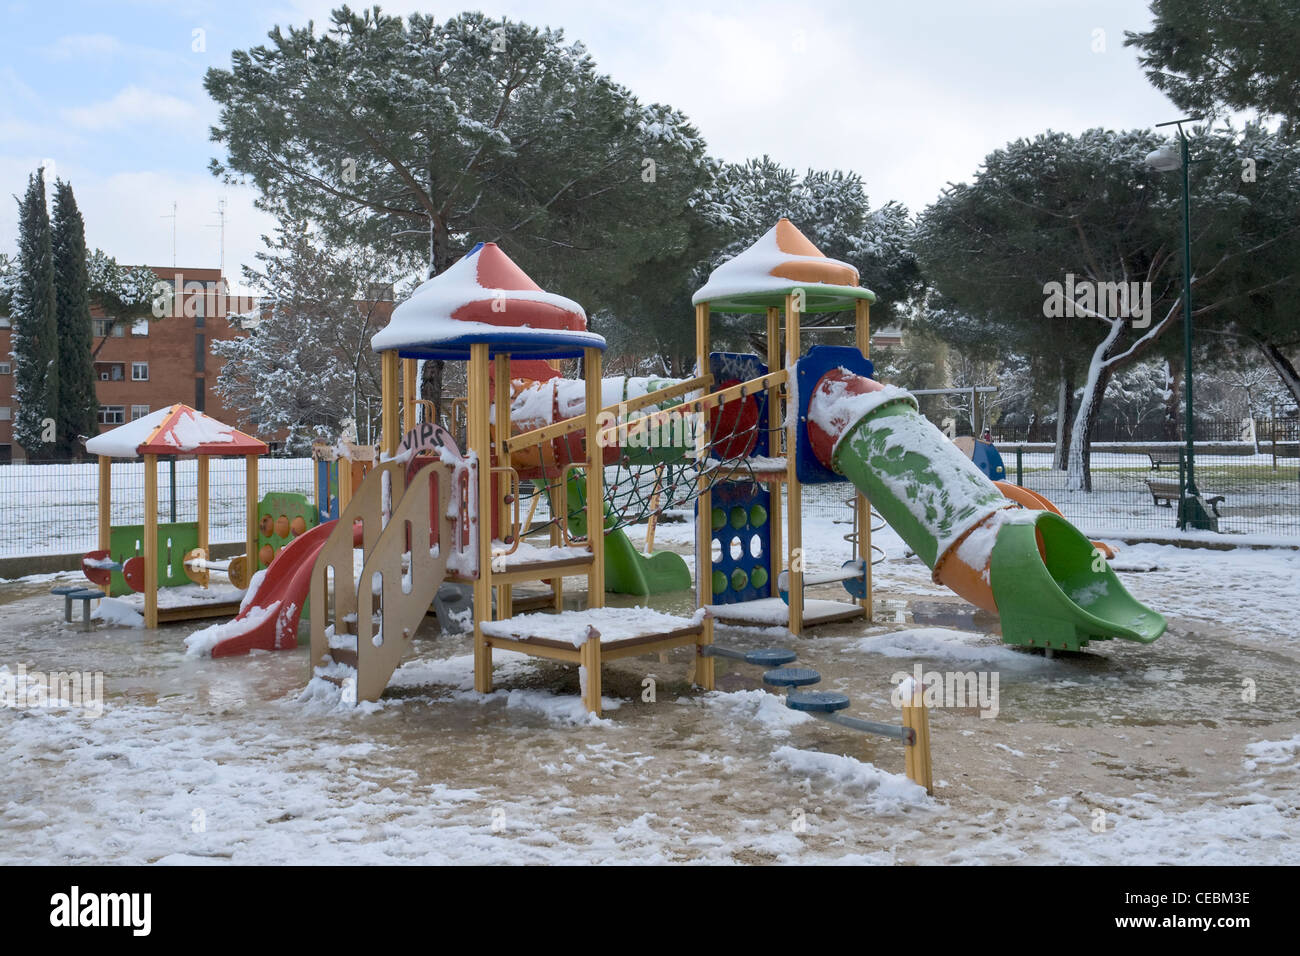 Colourful play area for children, Spinaceto district, after the exceptional snow fall occurred on February 2012, - Stock Image